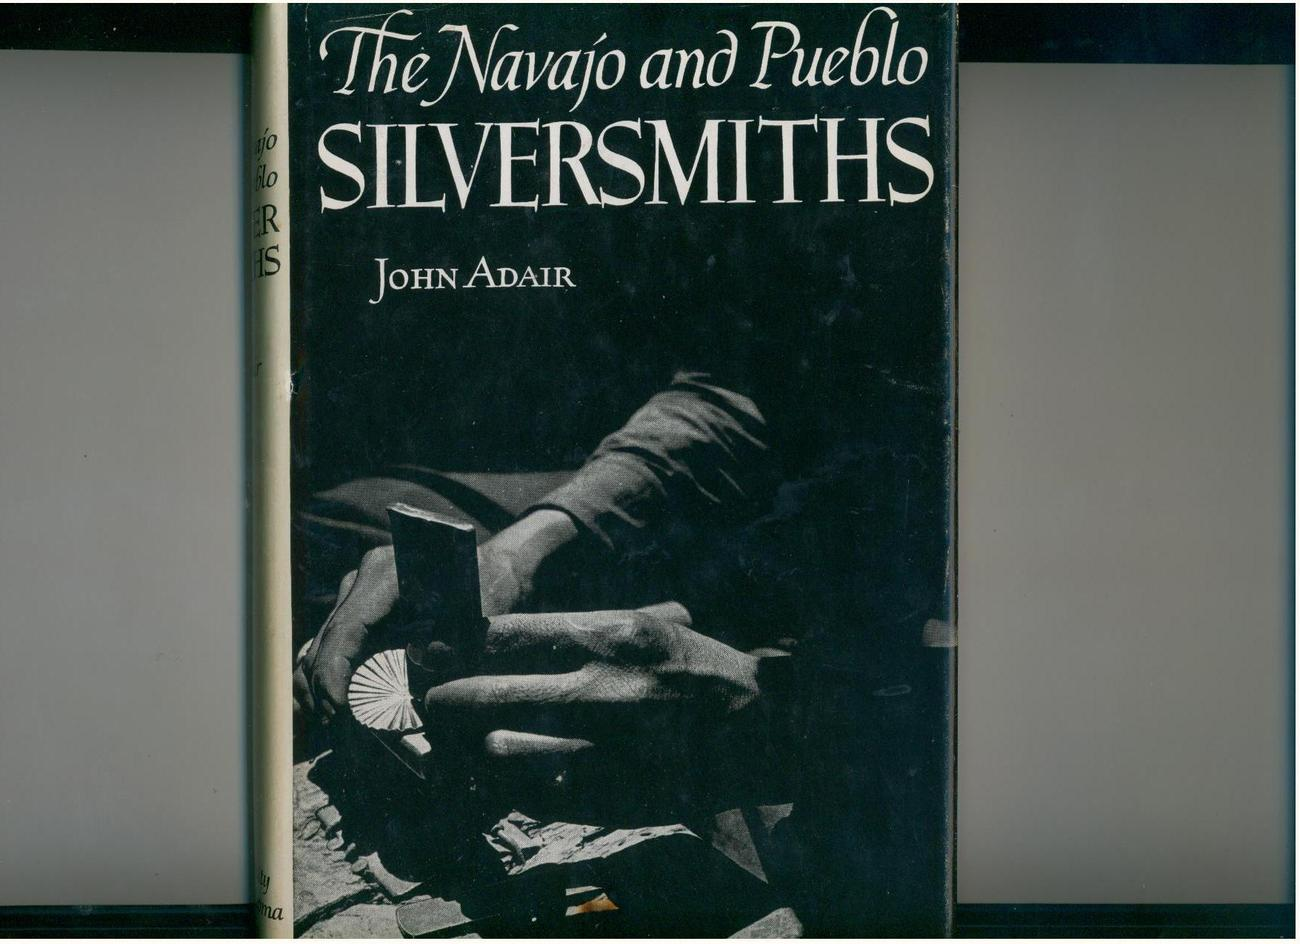 Adair  NAVAJO & PUEBLO SILVERSMITHS  1970  illustrated